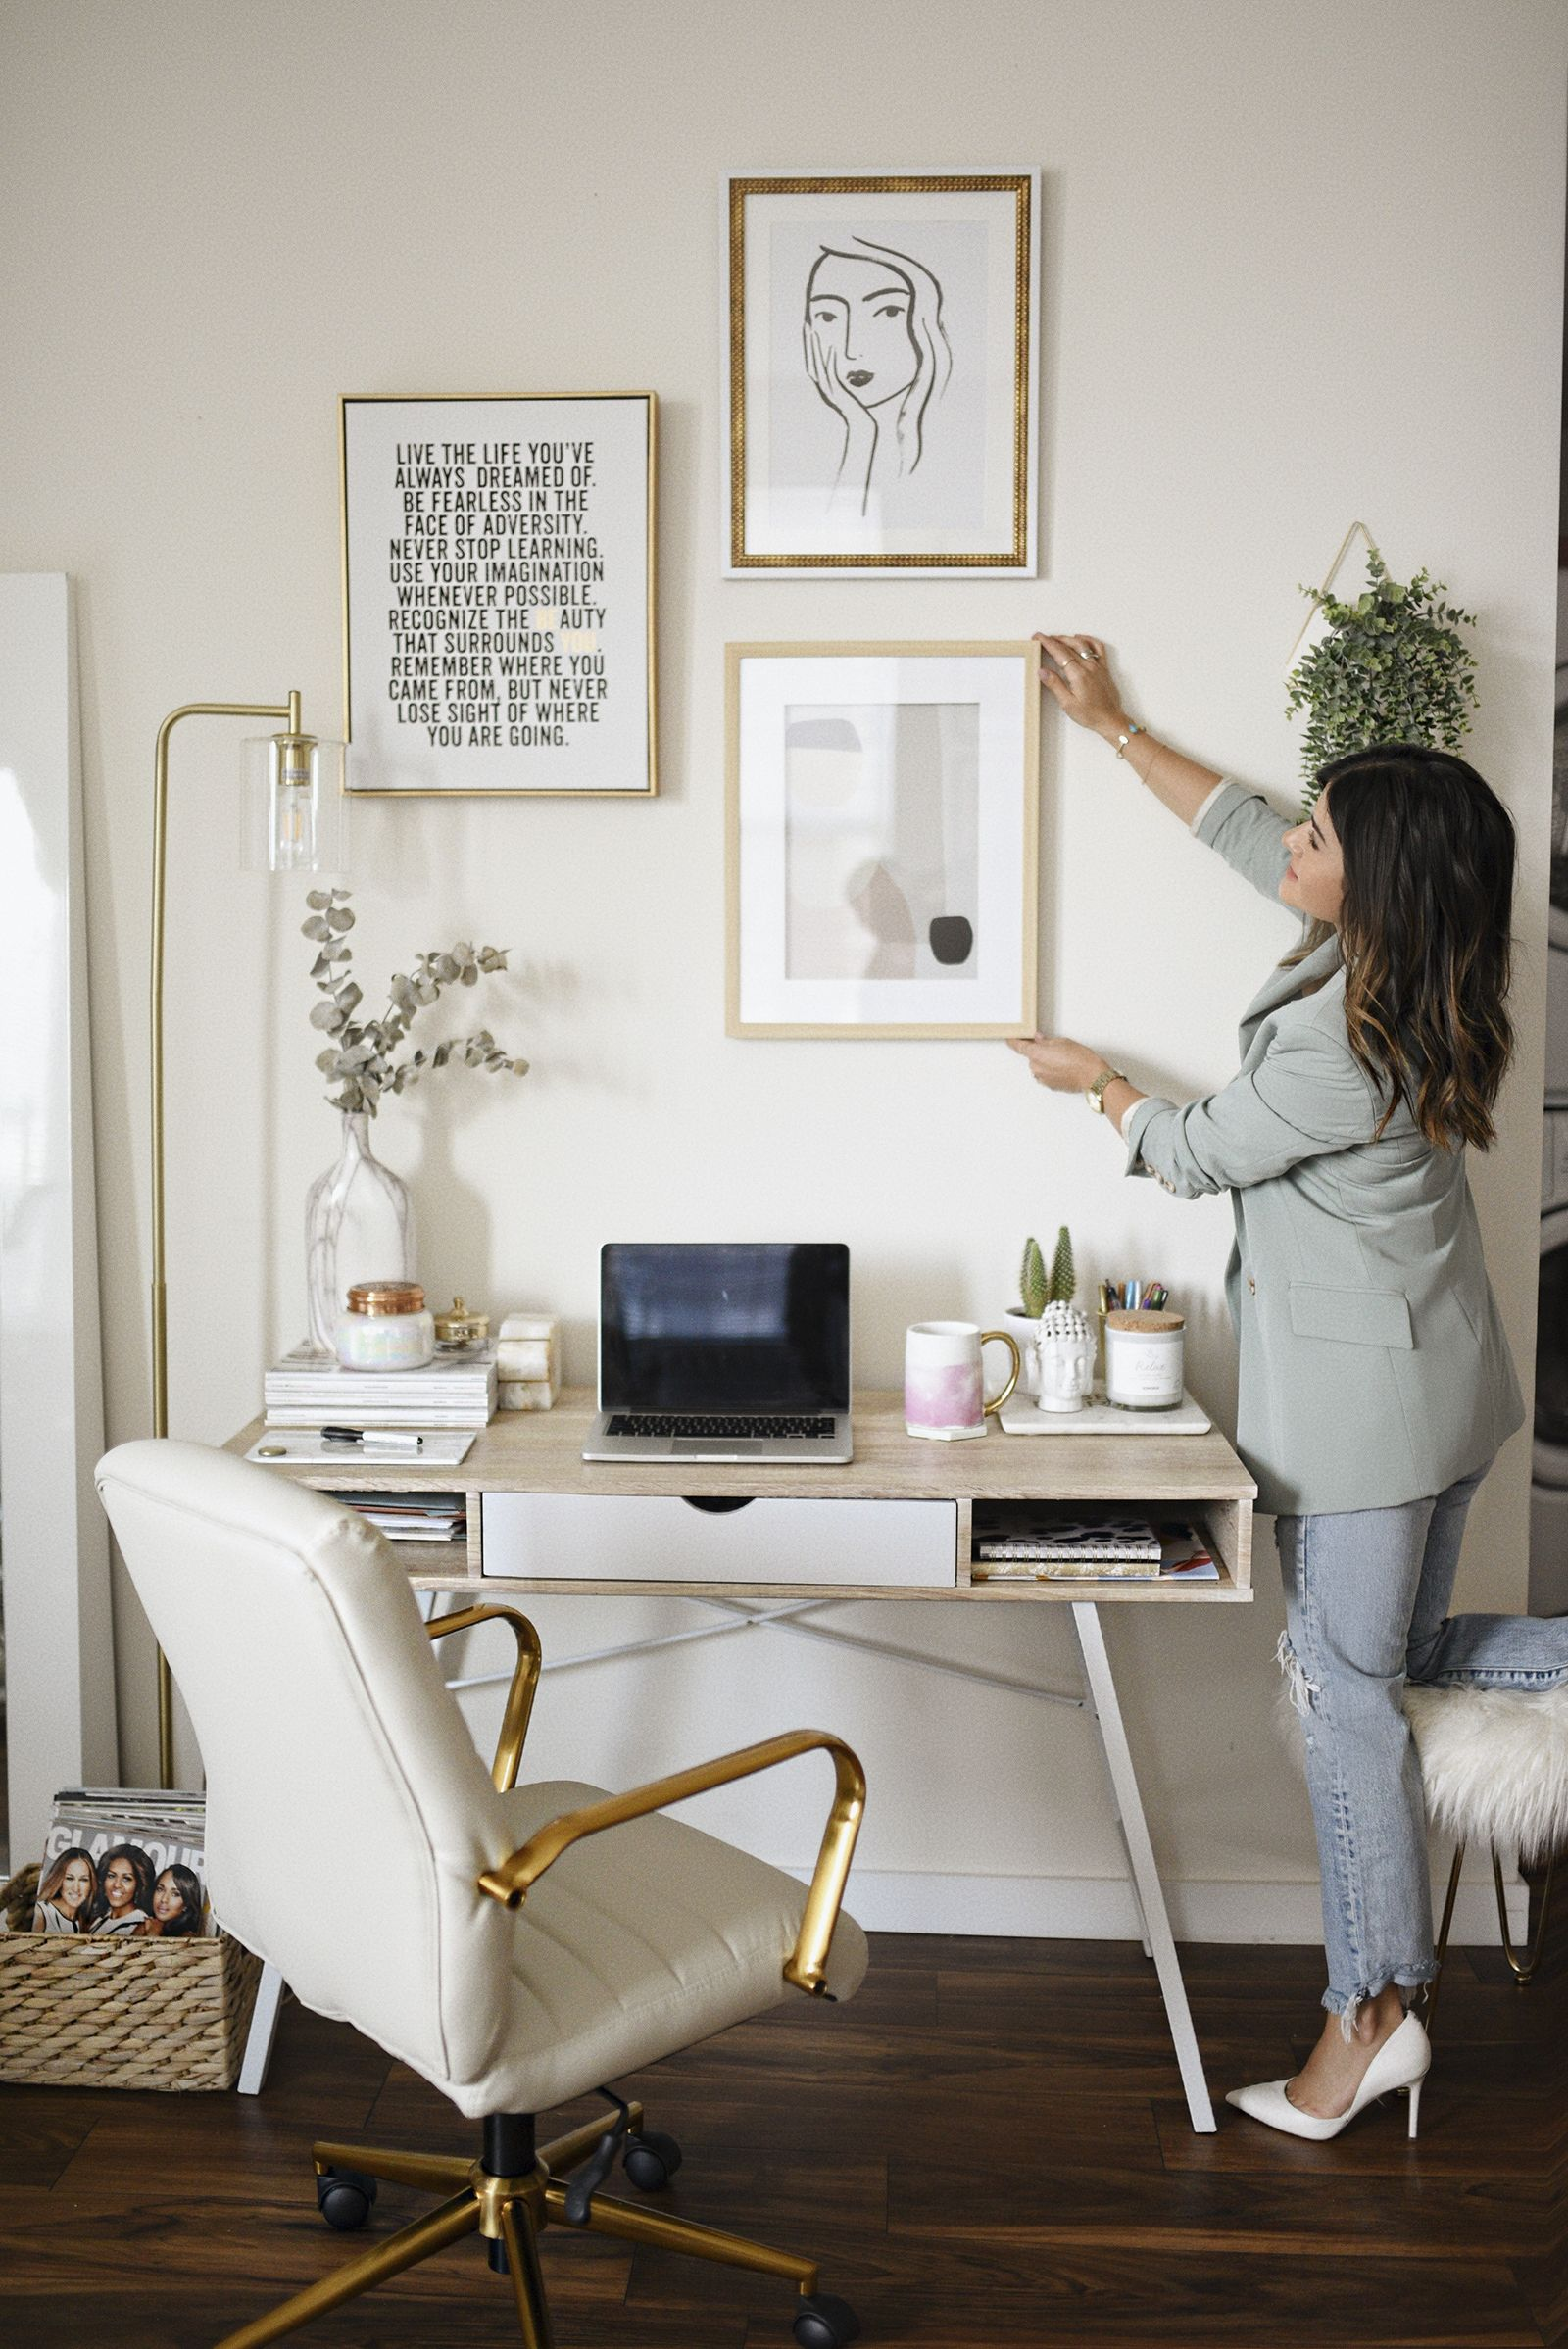 Home Office Decor Ideas In 2020 Home Office Decor Home Home